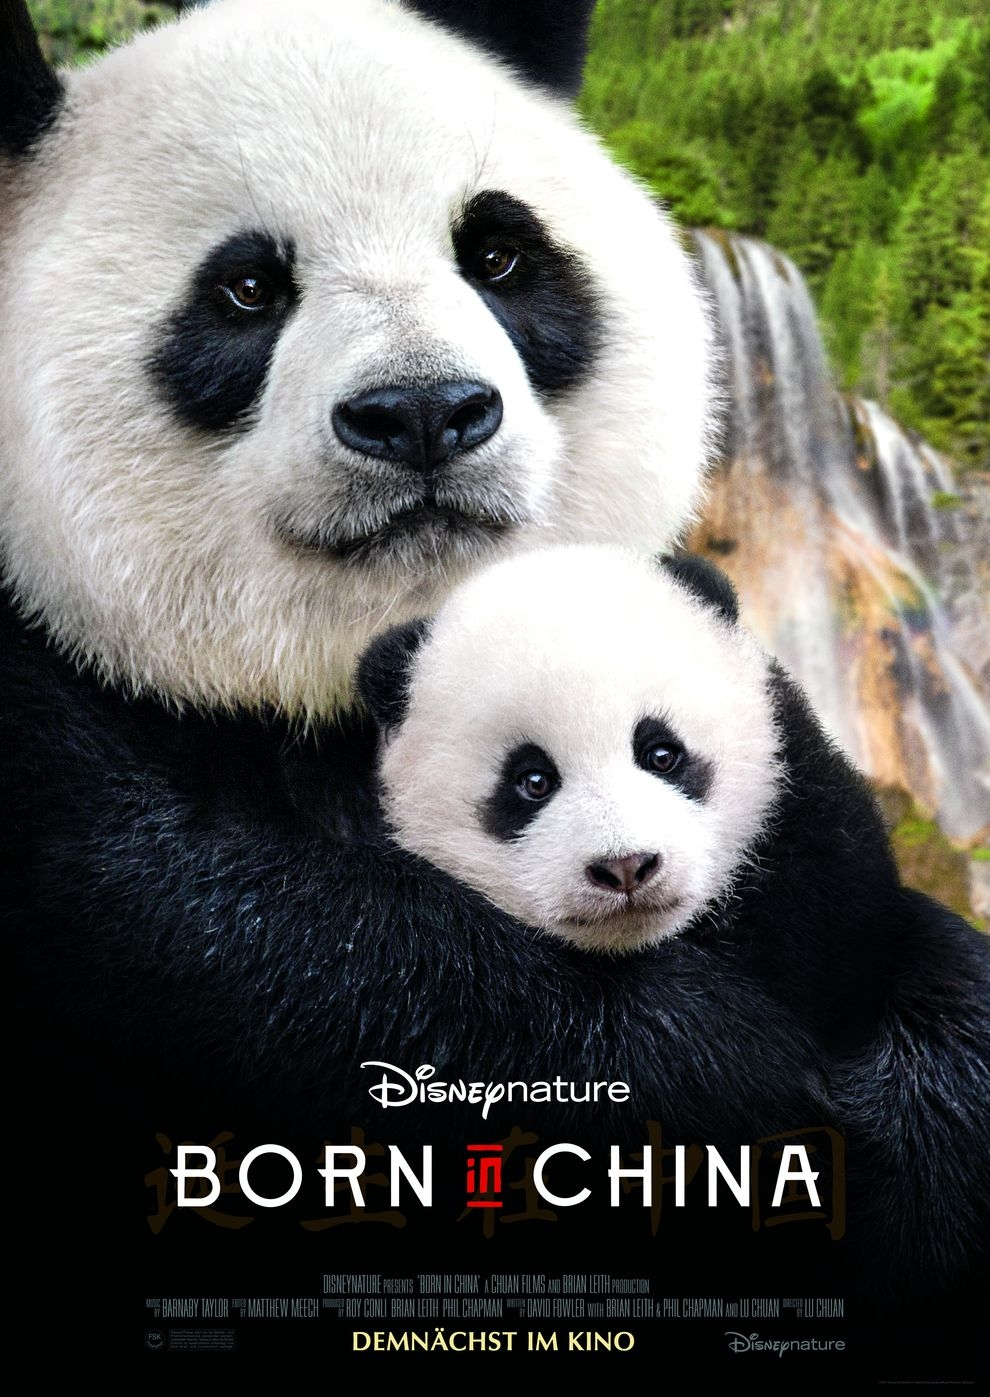 Born in China (Poster)